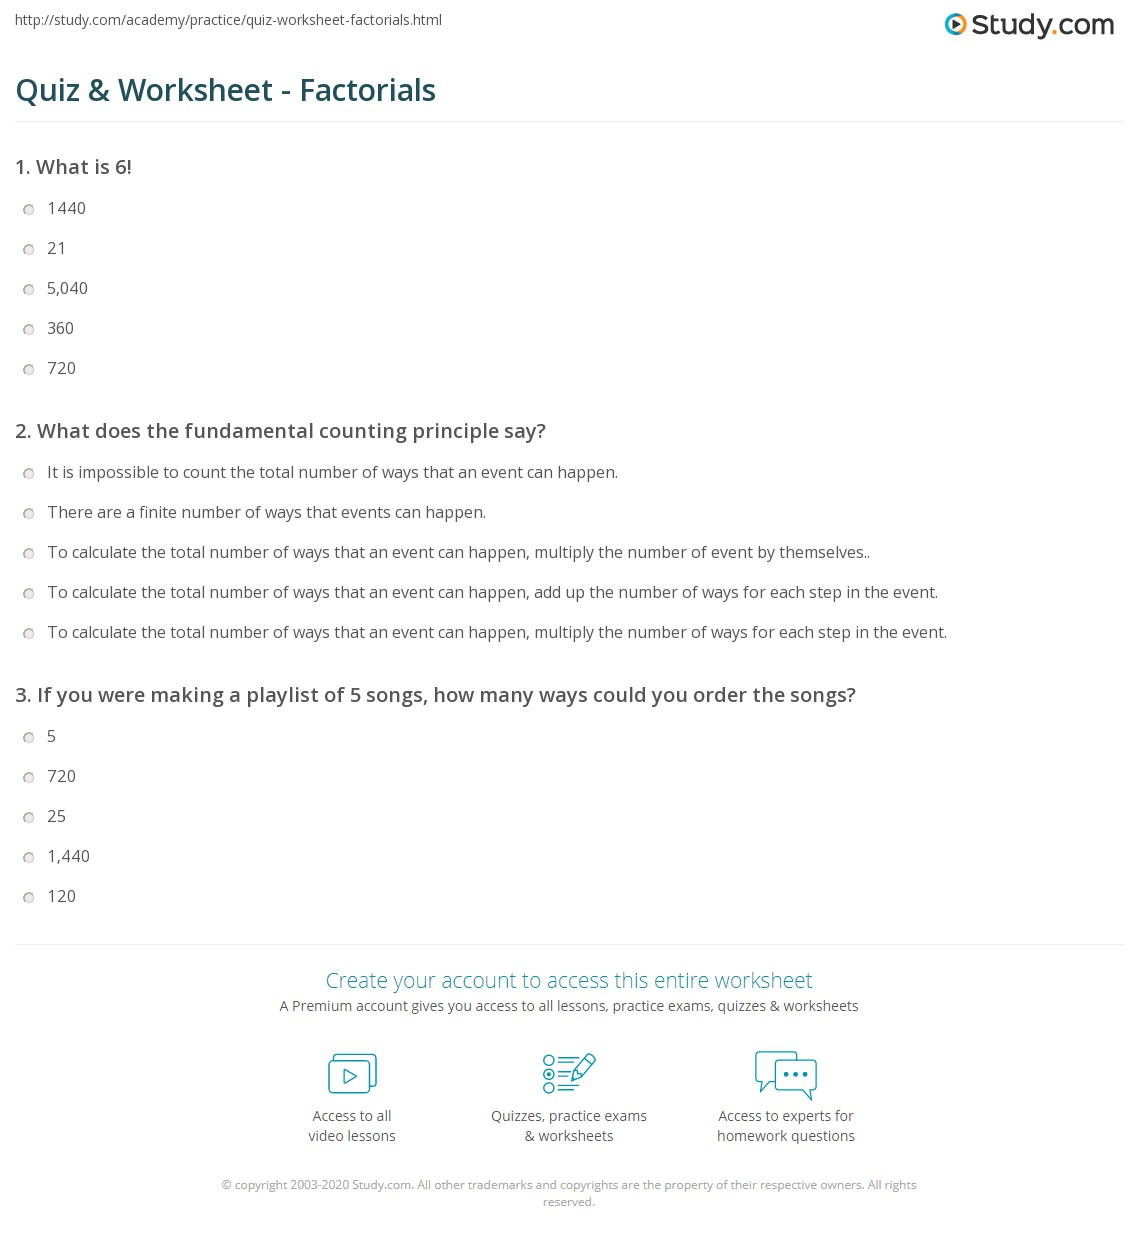 Factorials Worksheet Sharebrowse – Fundamental Counting Principle Worksheet